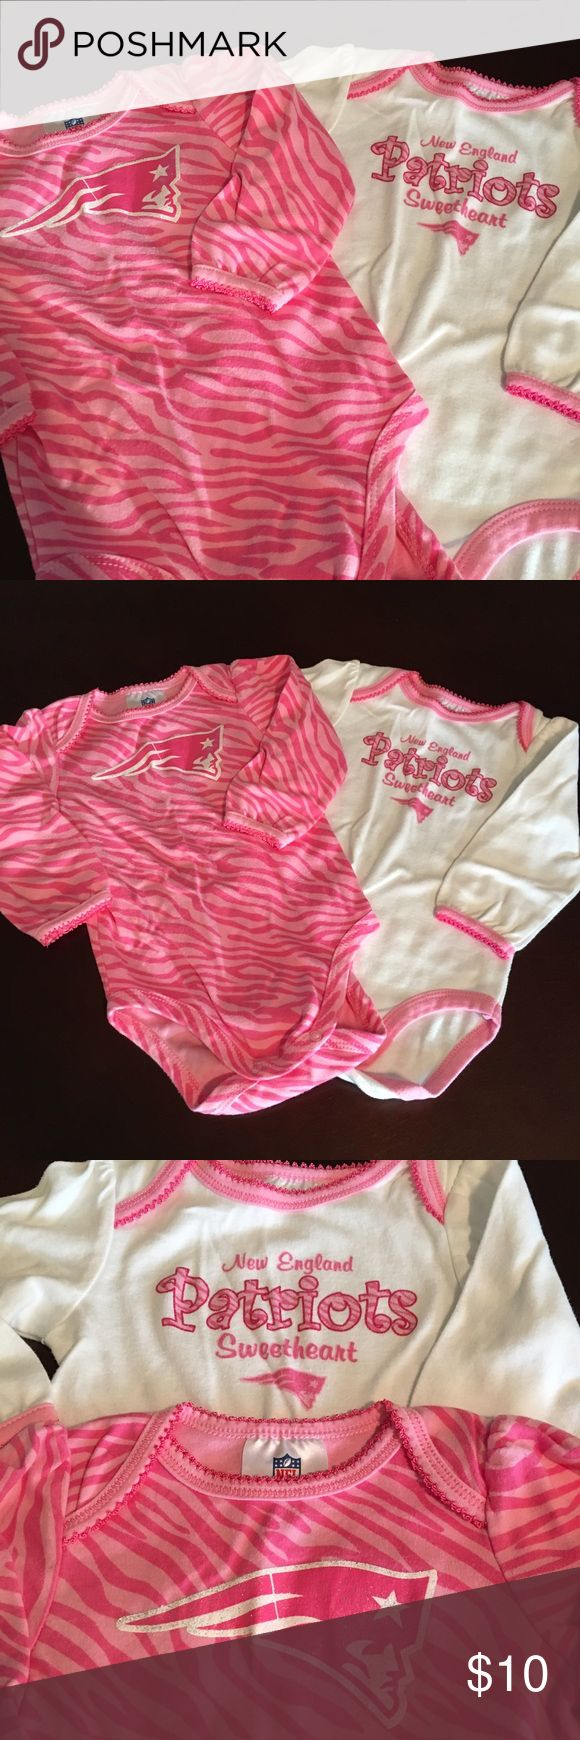 Girl's NFL New England Patriots onesies- 18 months #117.  Authentic NFL team apparel.  Let your little girl show her Patriot pride for the 2017 Super bowl champs!! VGUC long-sleeved onesies.  Very minor wash wear as seen in last pic.  SF/PF home.  **Please check out my closet.  Lots of girls things.  10% discount on bundles**.  Tags: New England, football, champions, Pats NFL Team Shop One Pieces Bodysuits